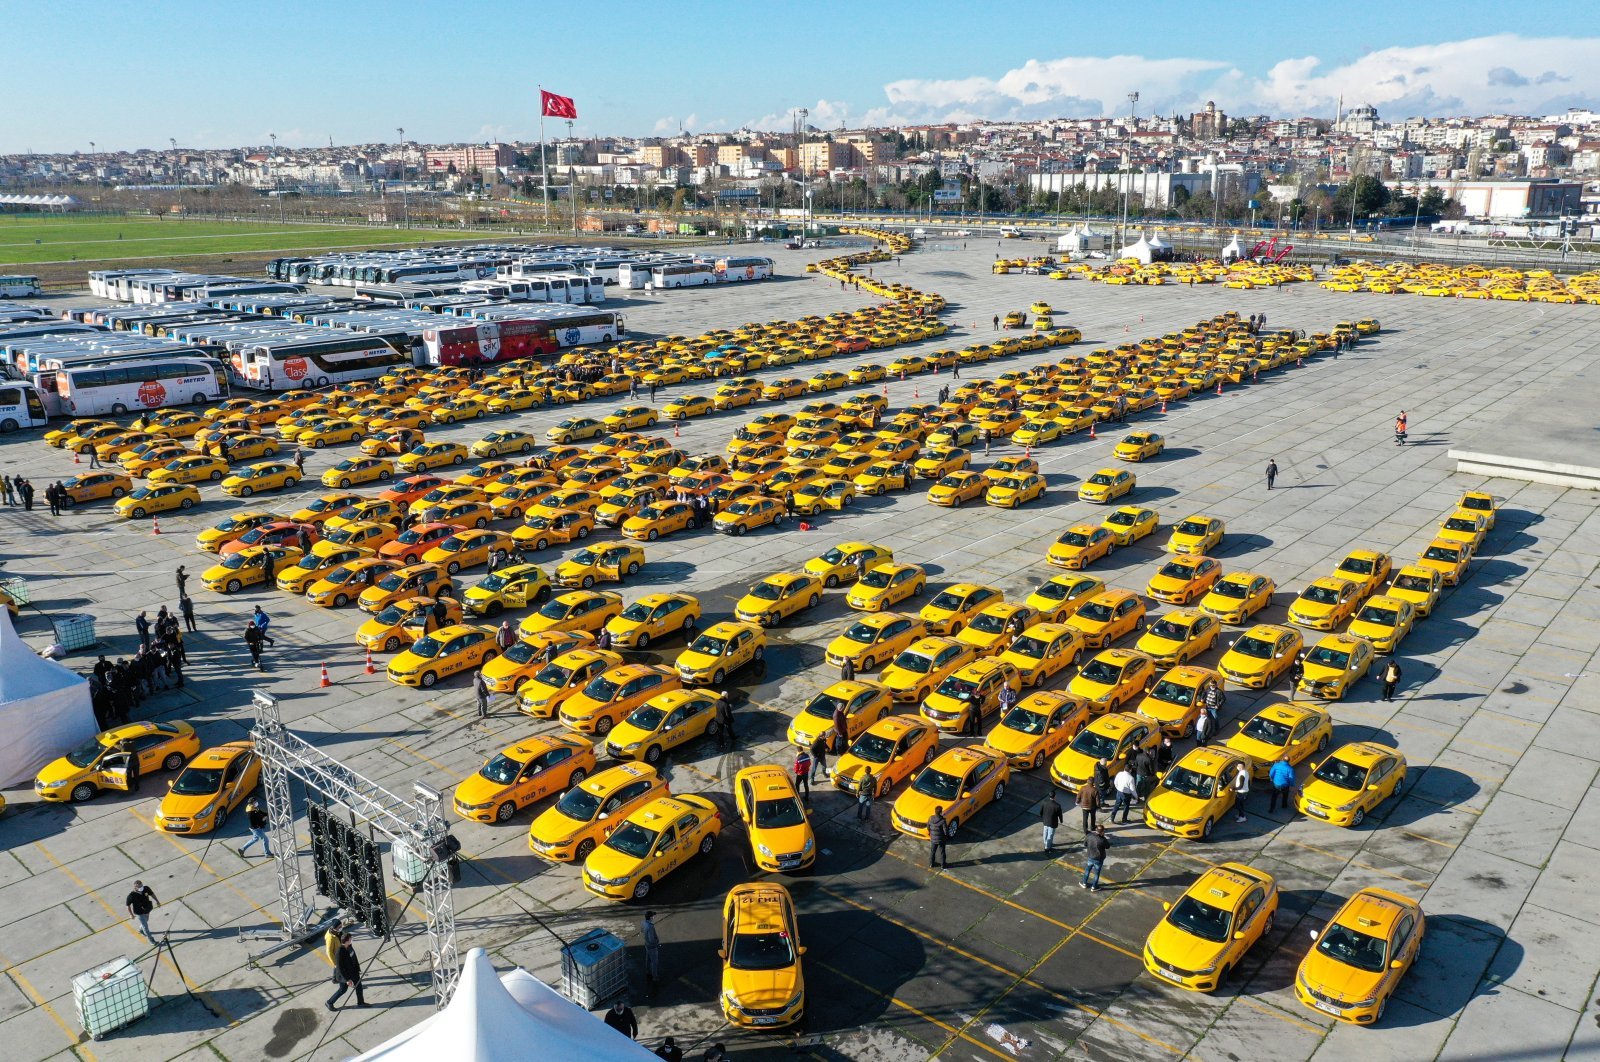 Istanbul's overcharging, reckless taxi drivers draw ire